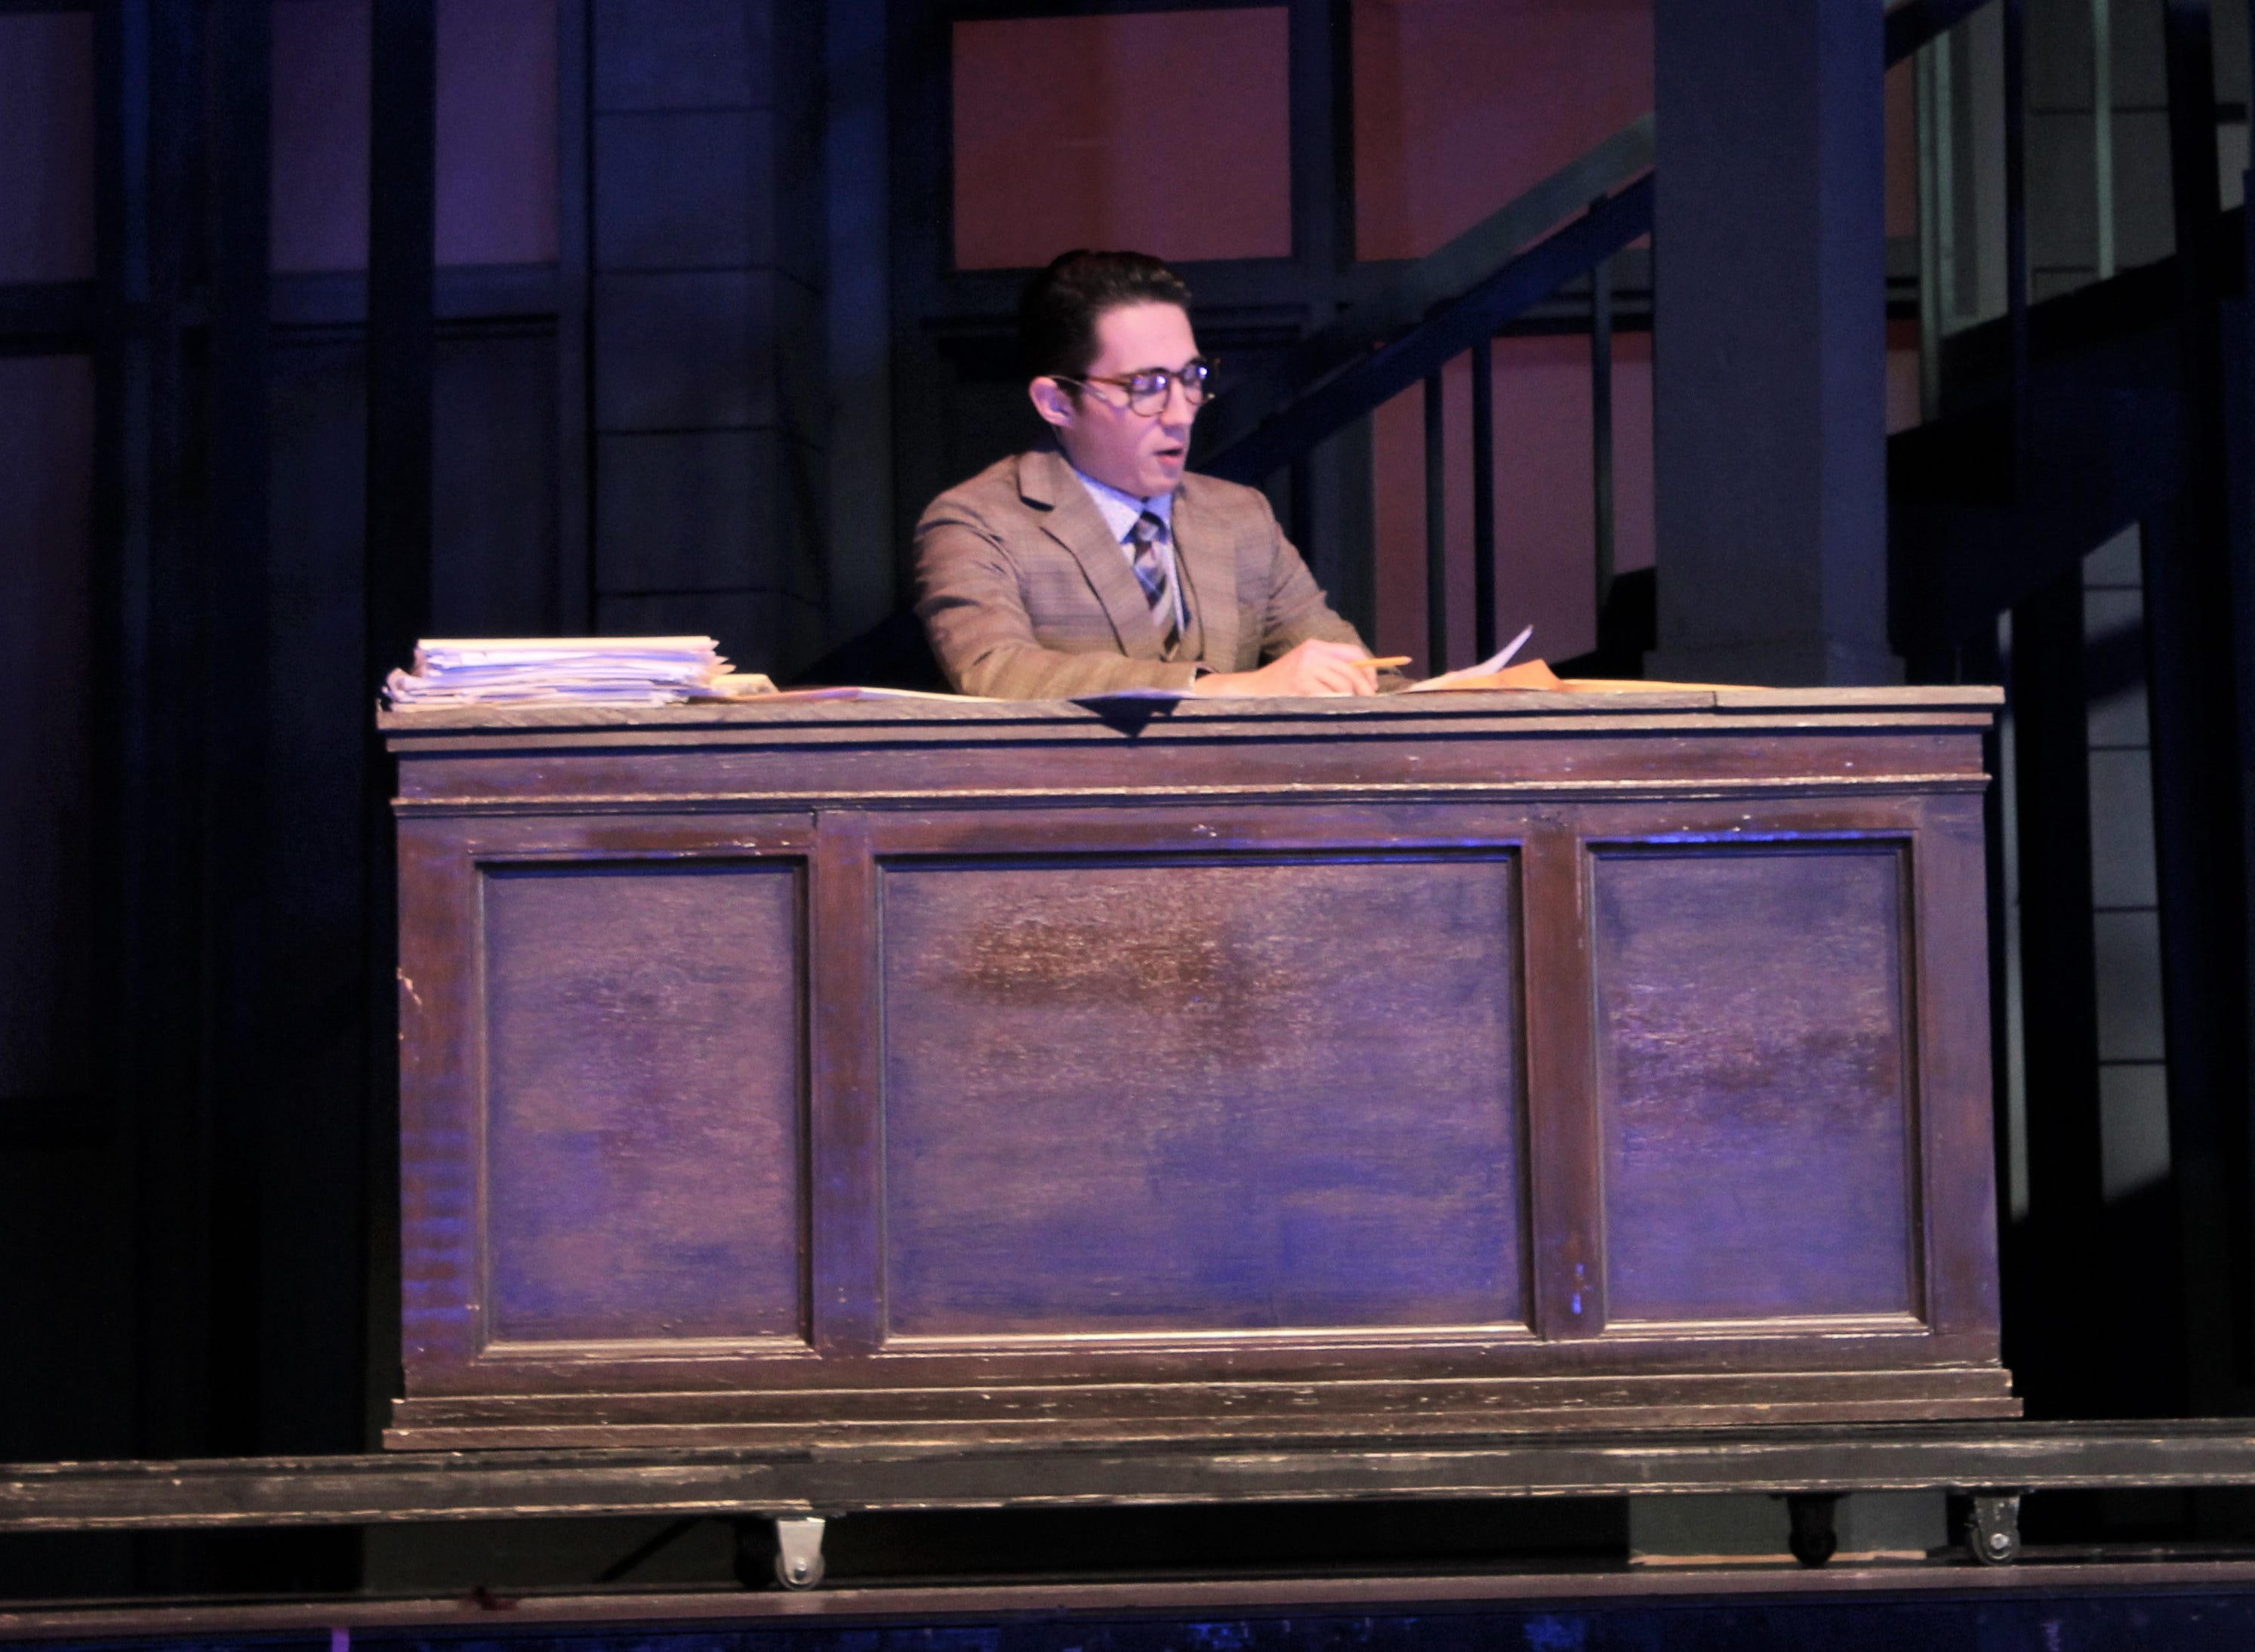 """Robert Baker (Andrew Boone) has dismissed aspiring writer Ruth Sherwood, then reads her stuff when alone in this rehearsal scene from """"Wonderful Town,"""" Abilene Christian's homecoming musical for 2018."""